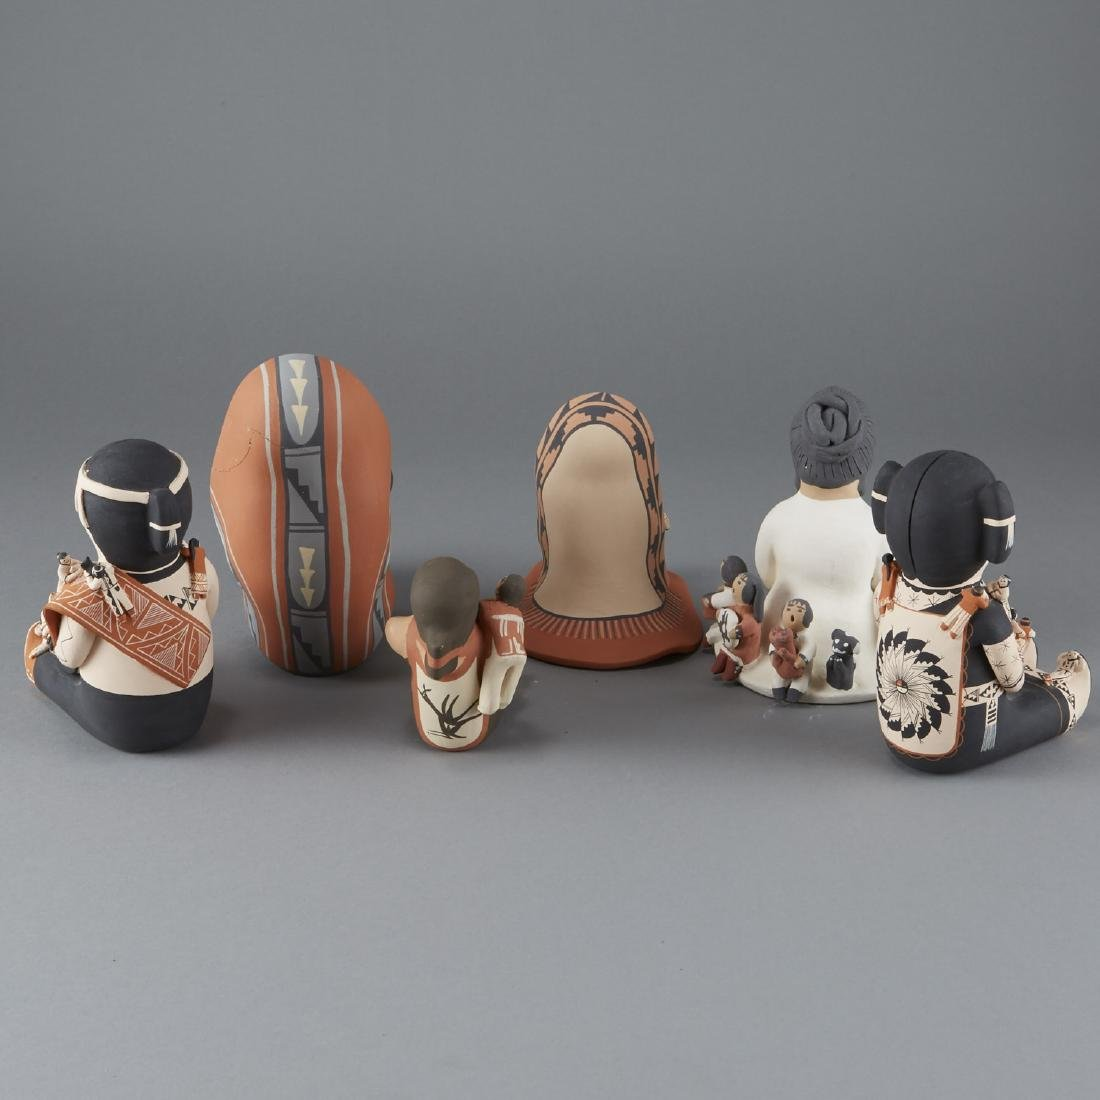 6 Ceramic Pieces Groups of Native American Women - 2